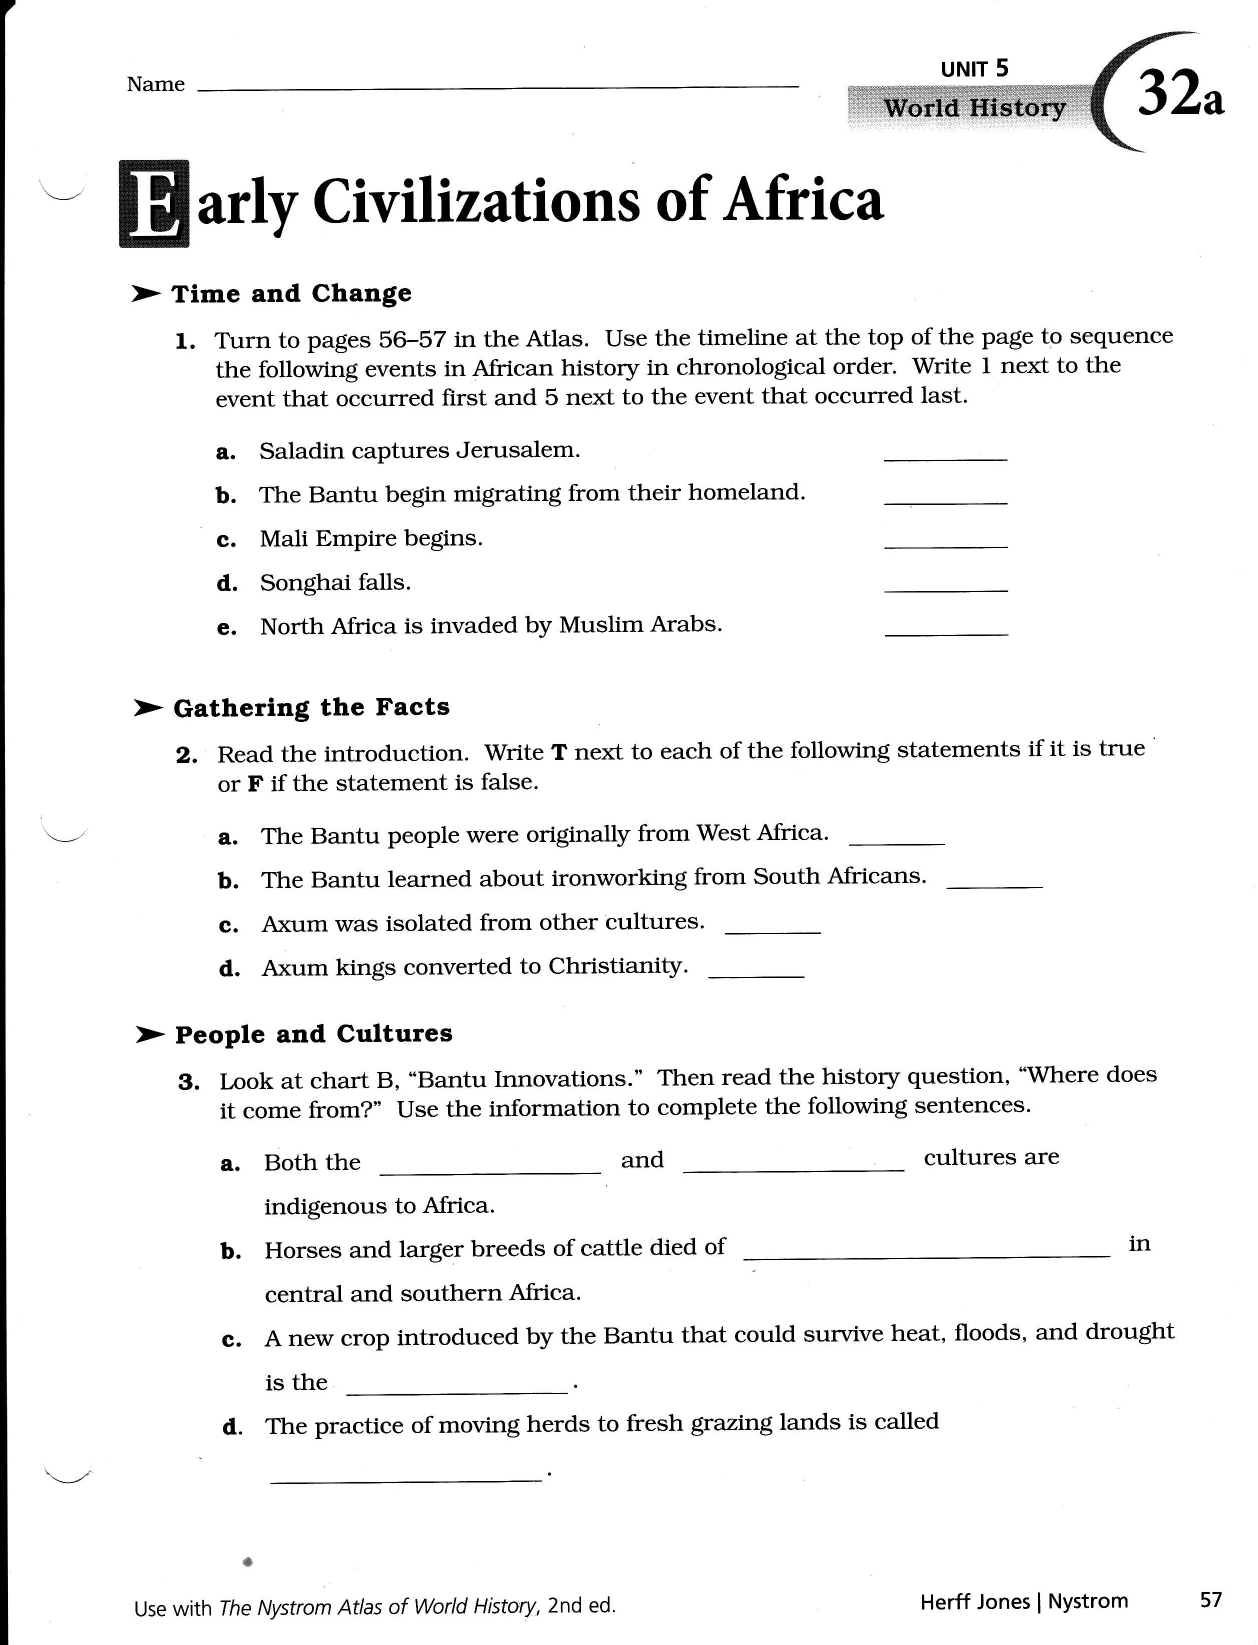 Early African Civilizations Worksheet Answers